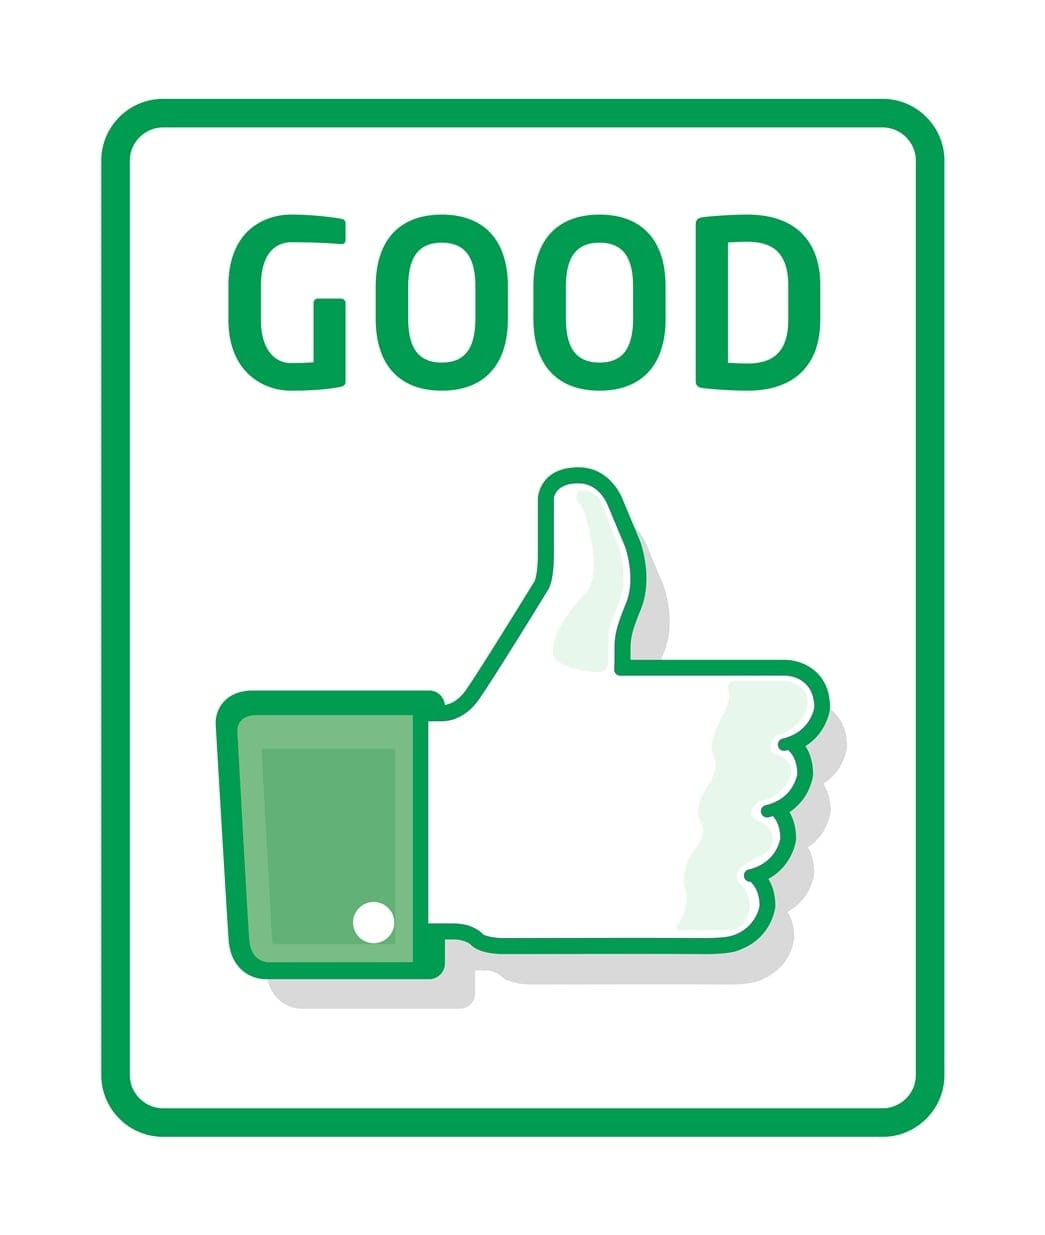 Image result for Images for the word good